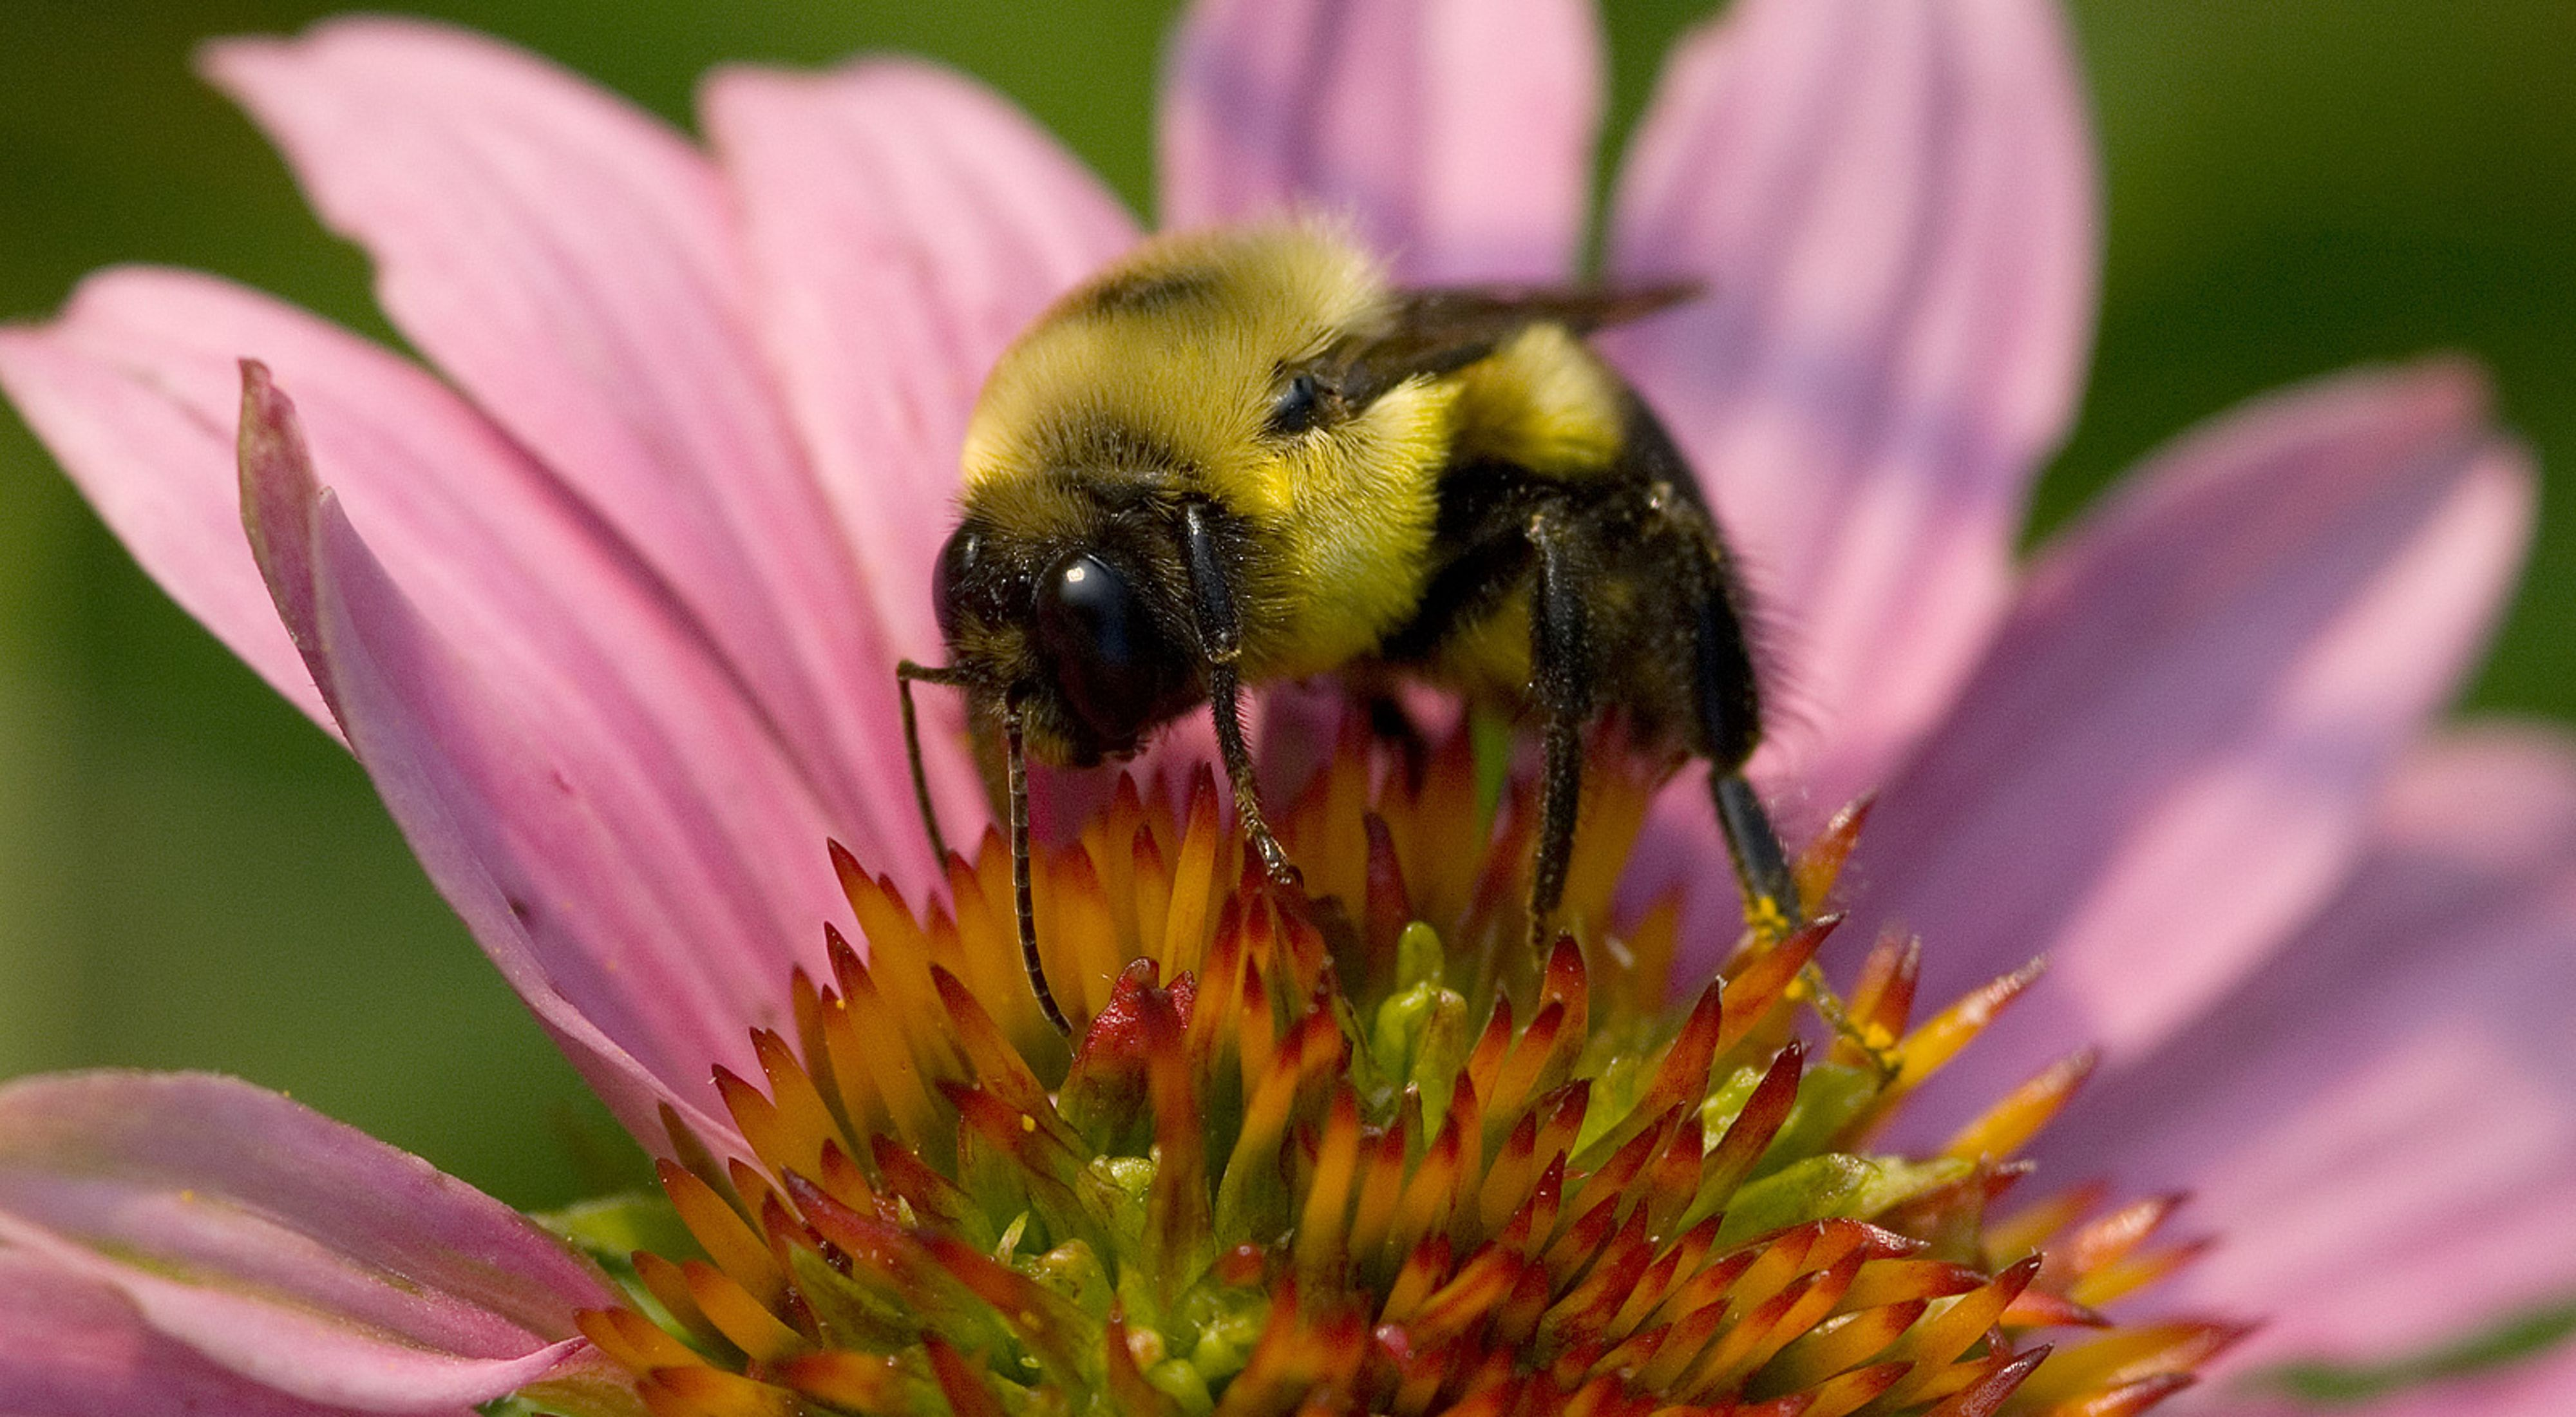 A bumblebee rests on a pink flower.